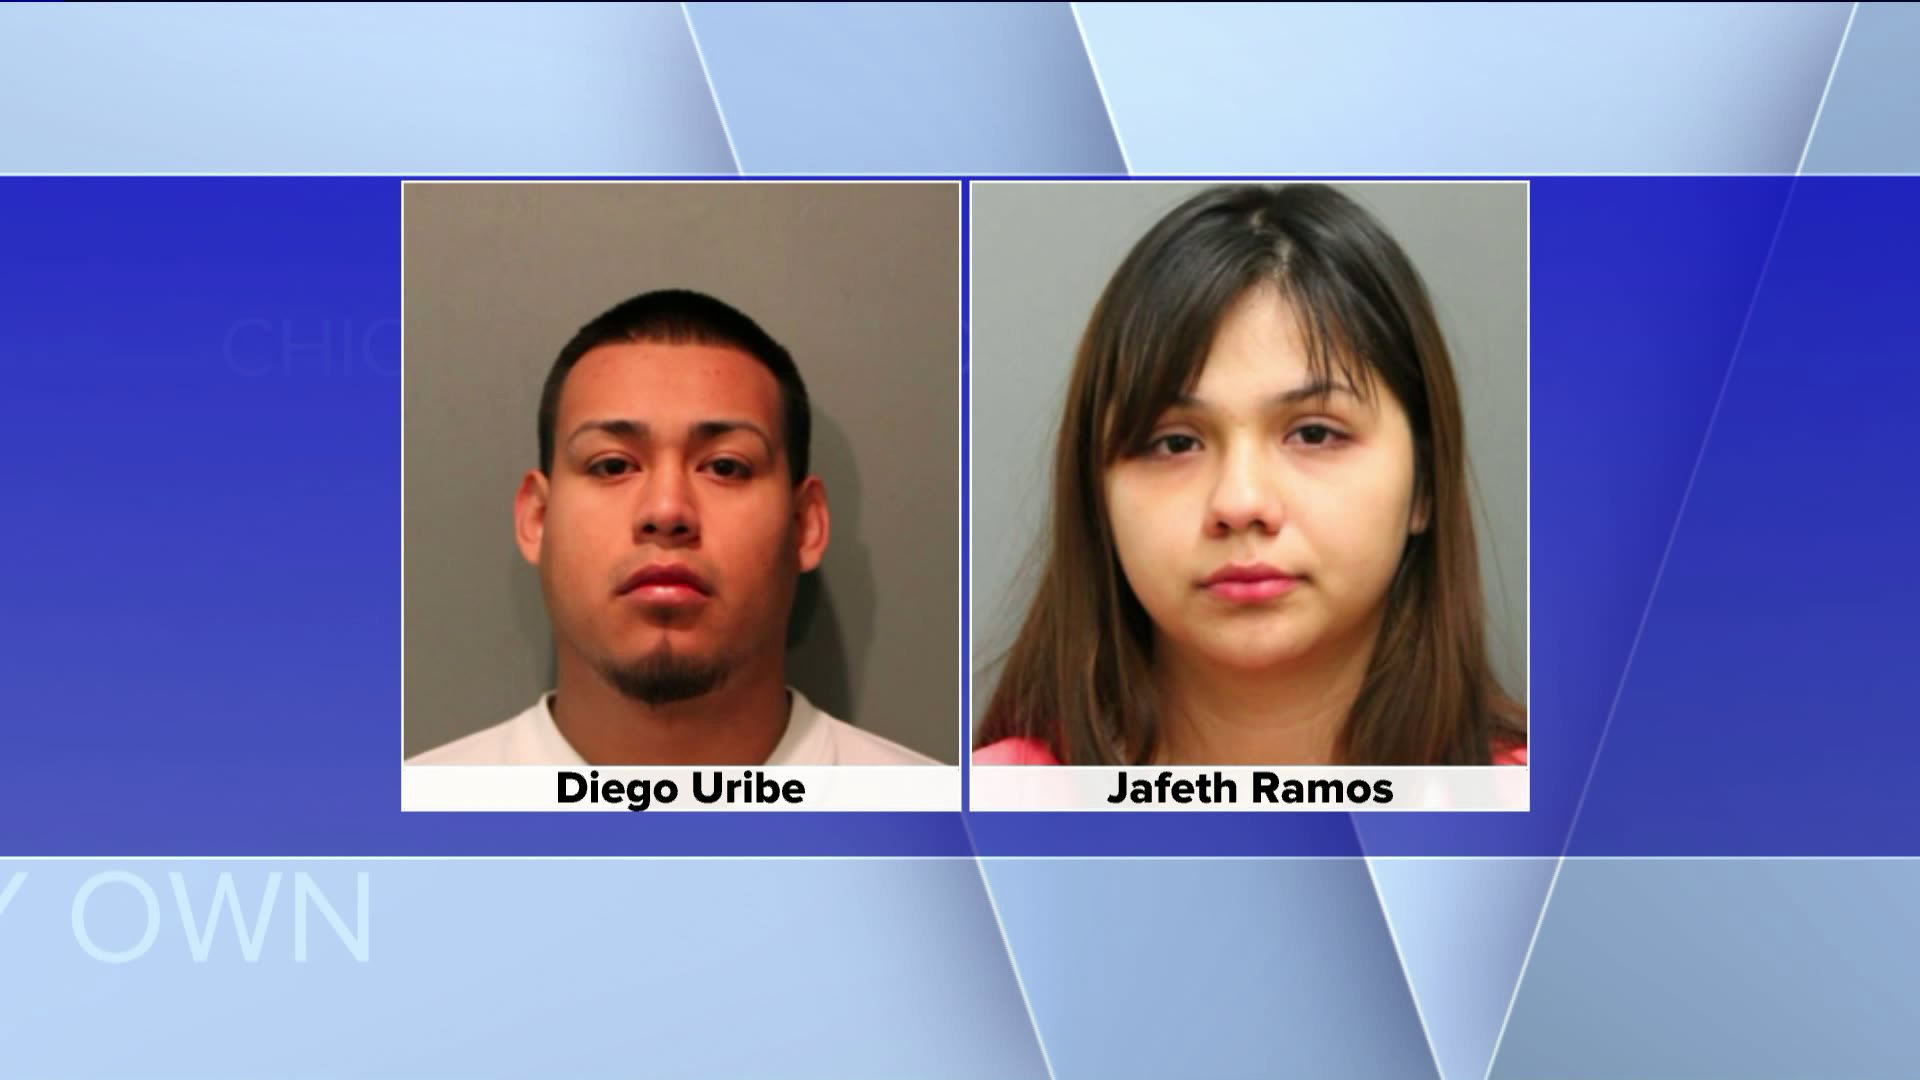 Police have charged 22-year-old Diego Uribe-Cruz and his girlfriend 19-year-old Jafeth Ramos with six counts of first degree murder.